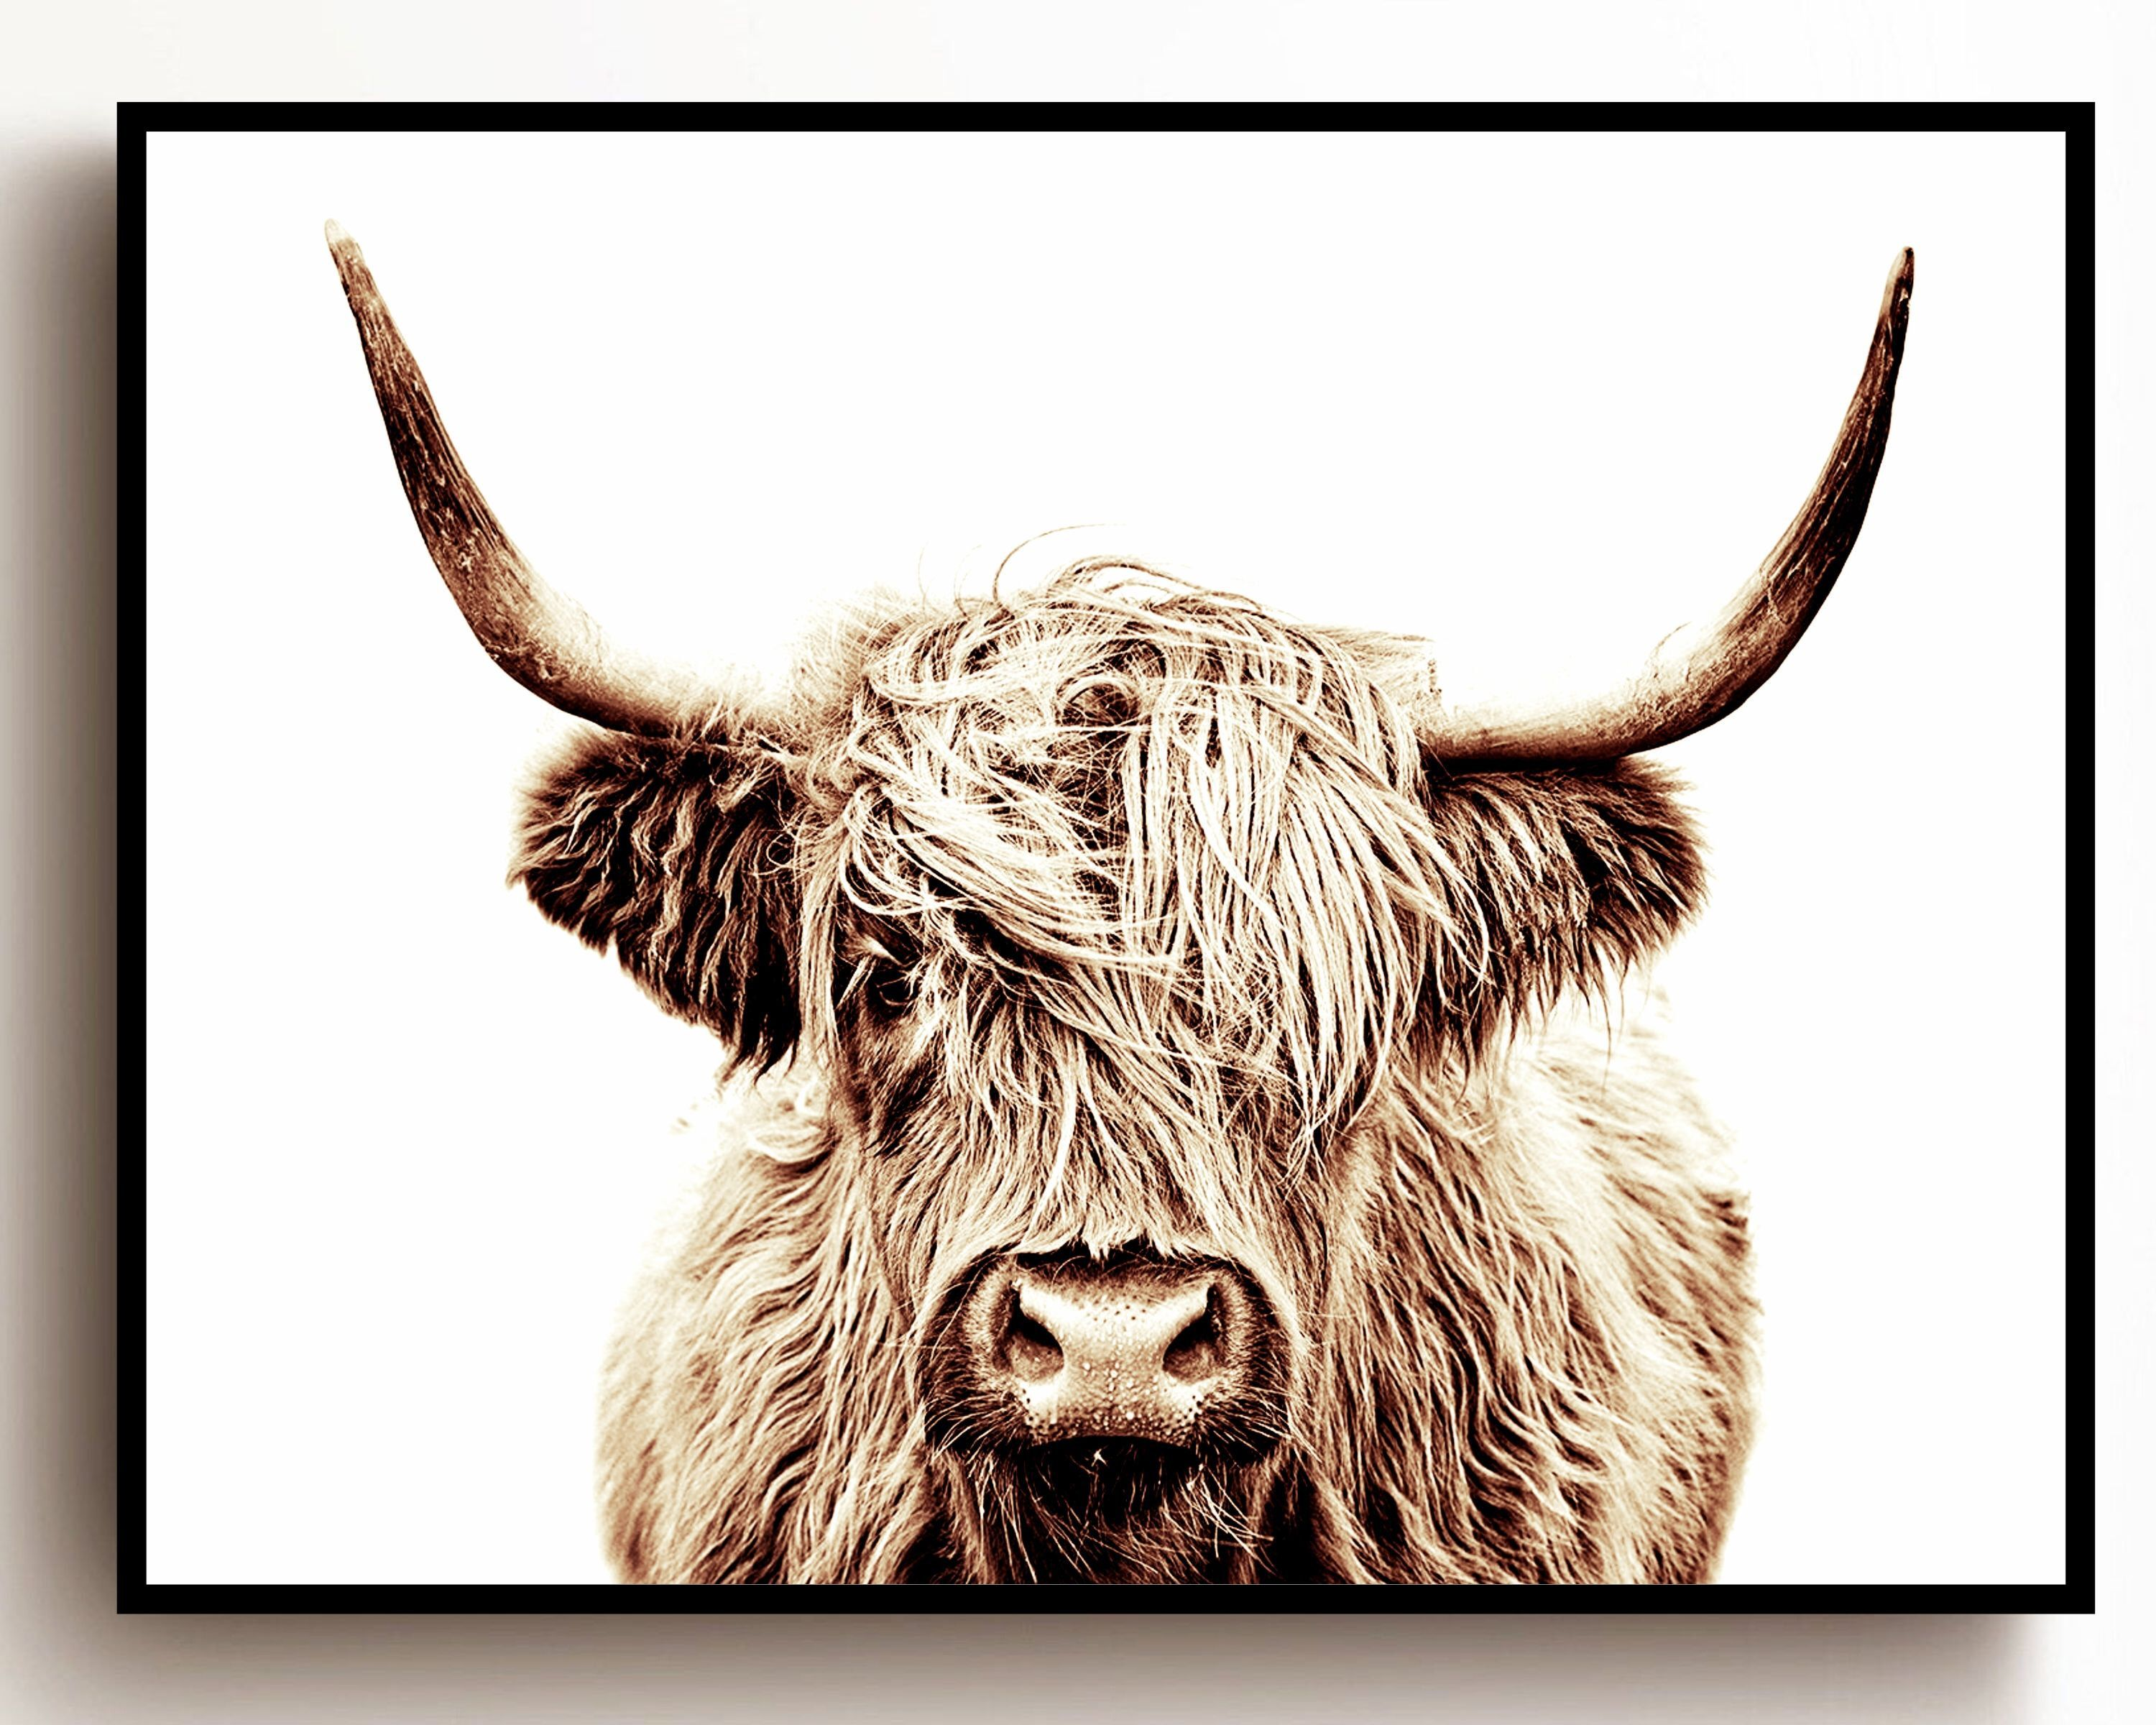 Highland Cow Print Buffalo Print Bull Print Cow Canvas Etsy In 2021 Cow Wall Art Highland Cow Print Cow Canvas